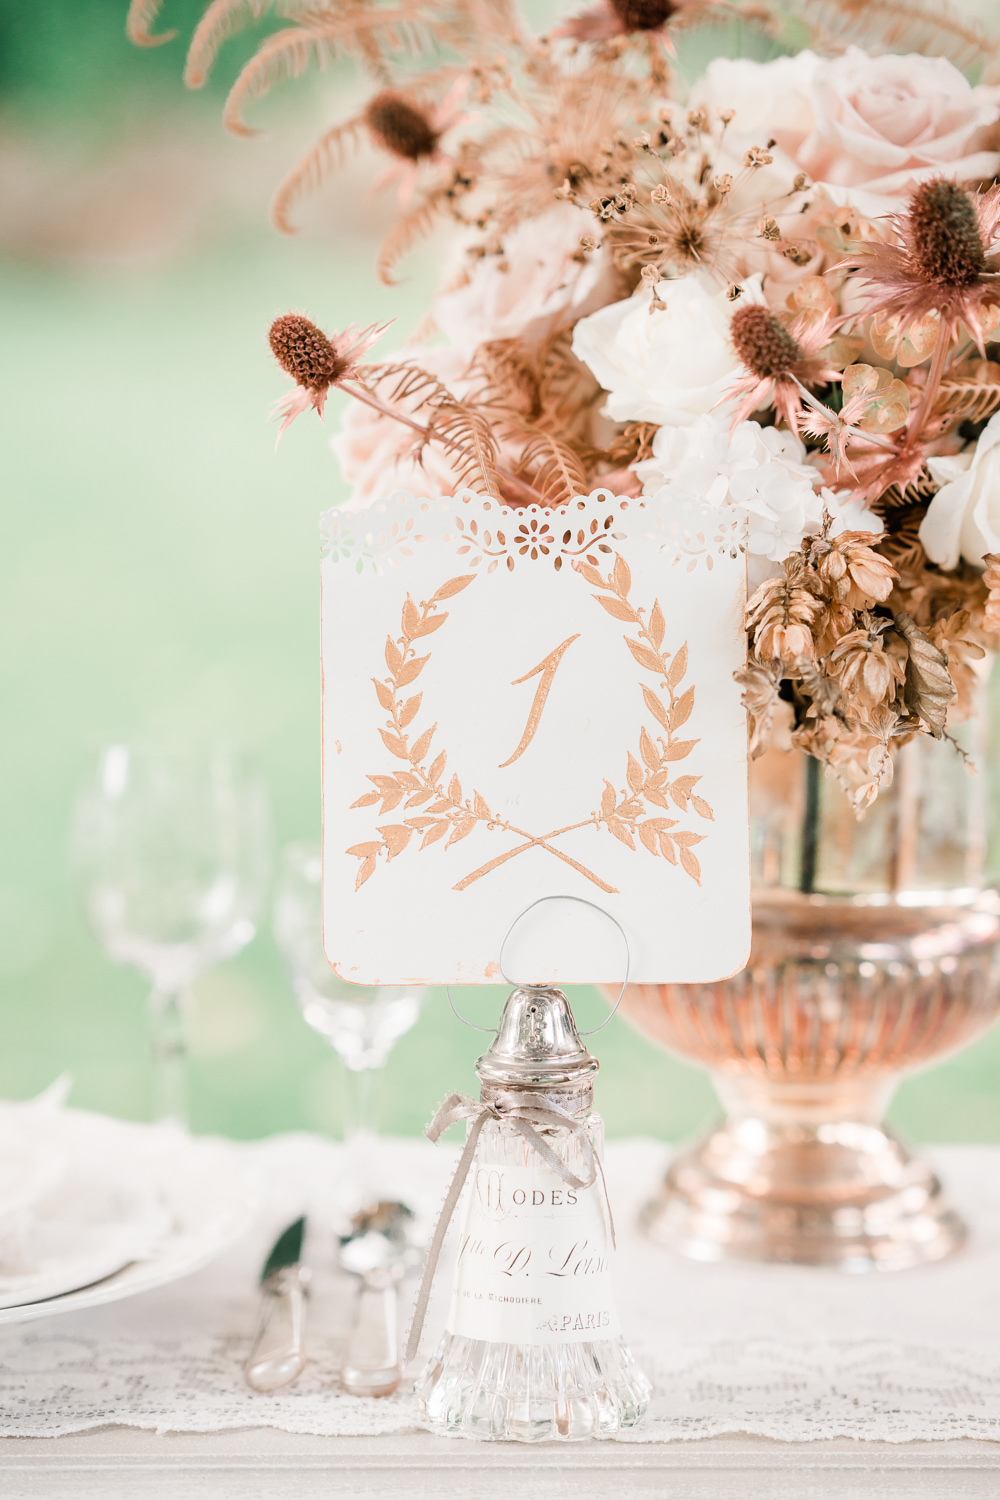 Copper Gold Calligraphy Wreath Stationery Table Name Golden Autumnal Wedding Ideas Joanna Briggs Photography